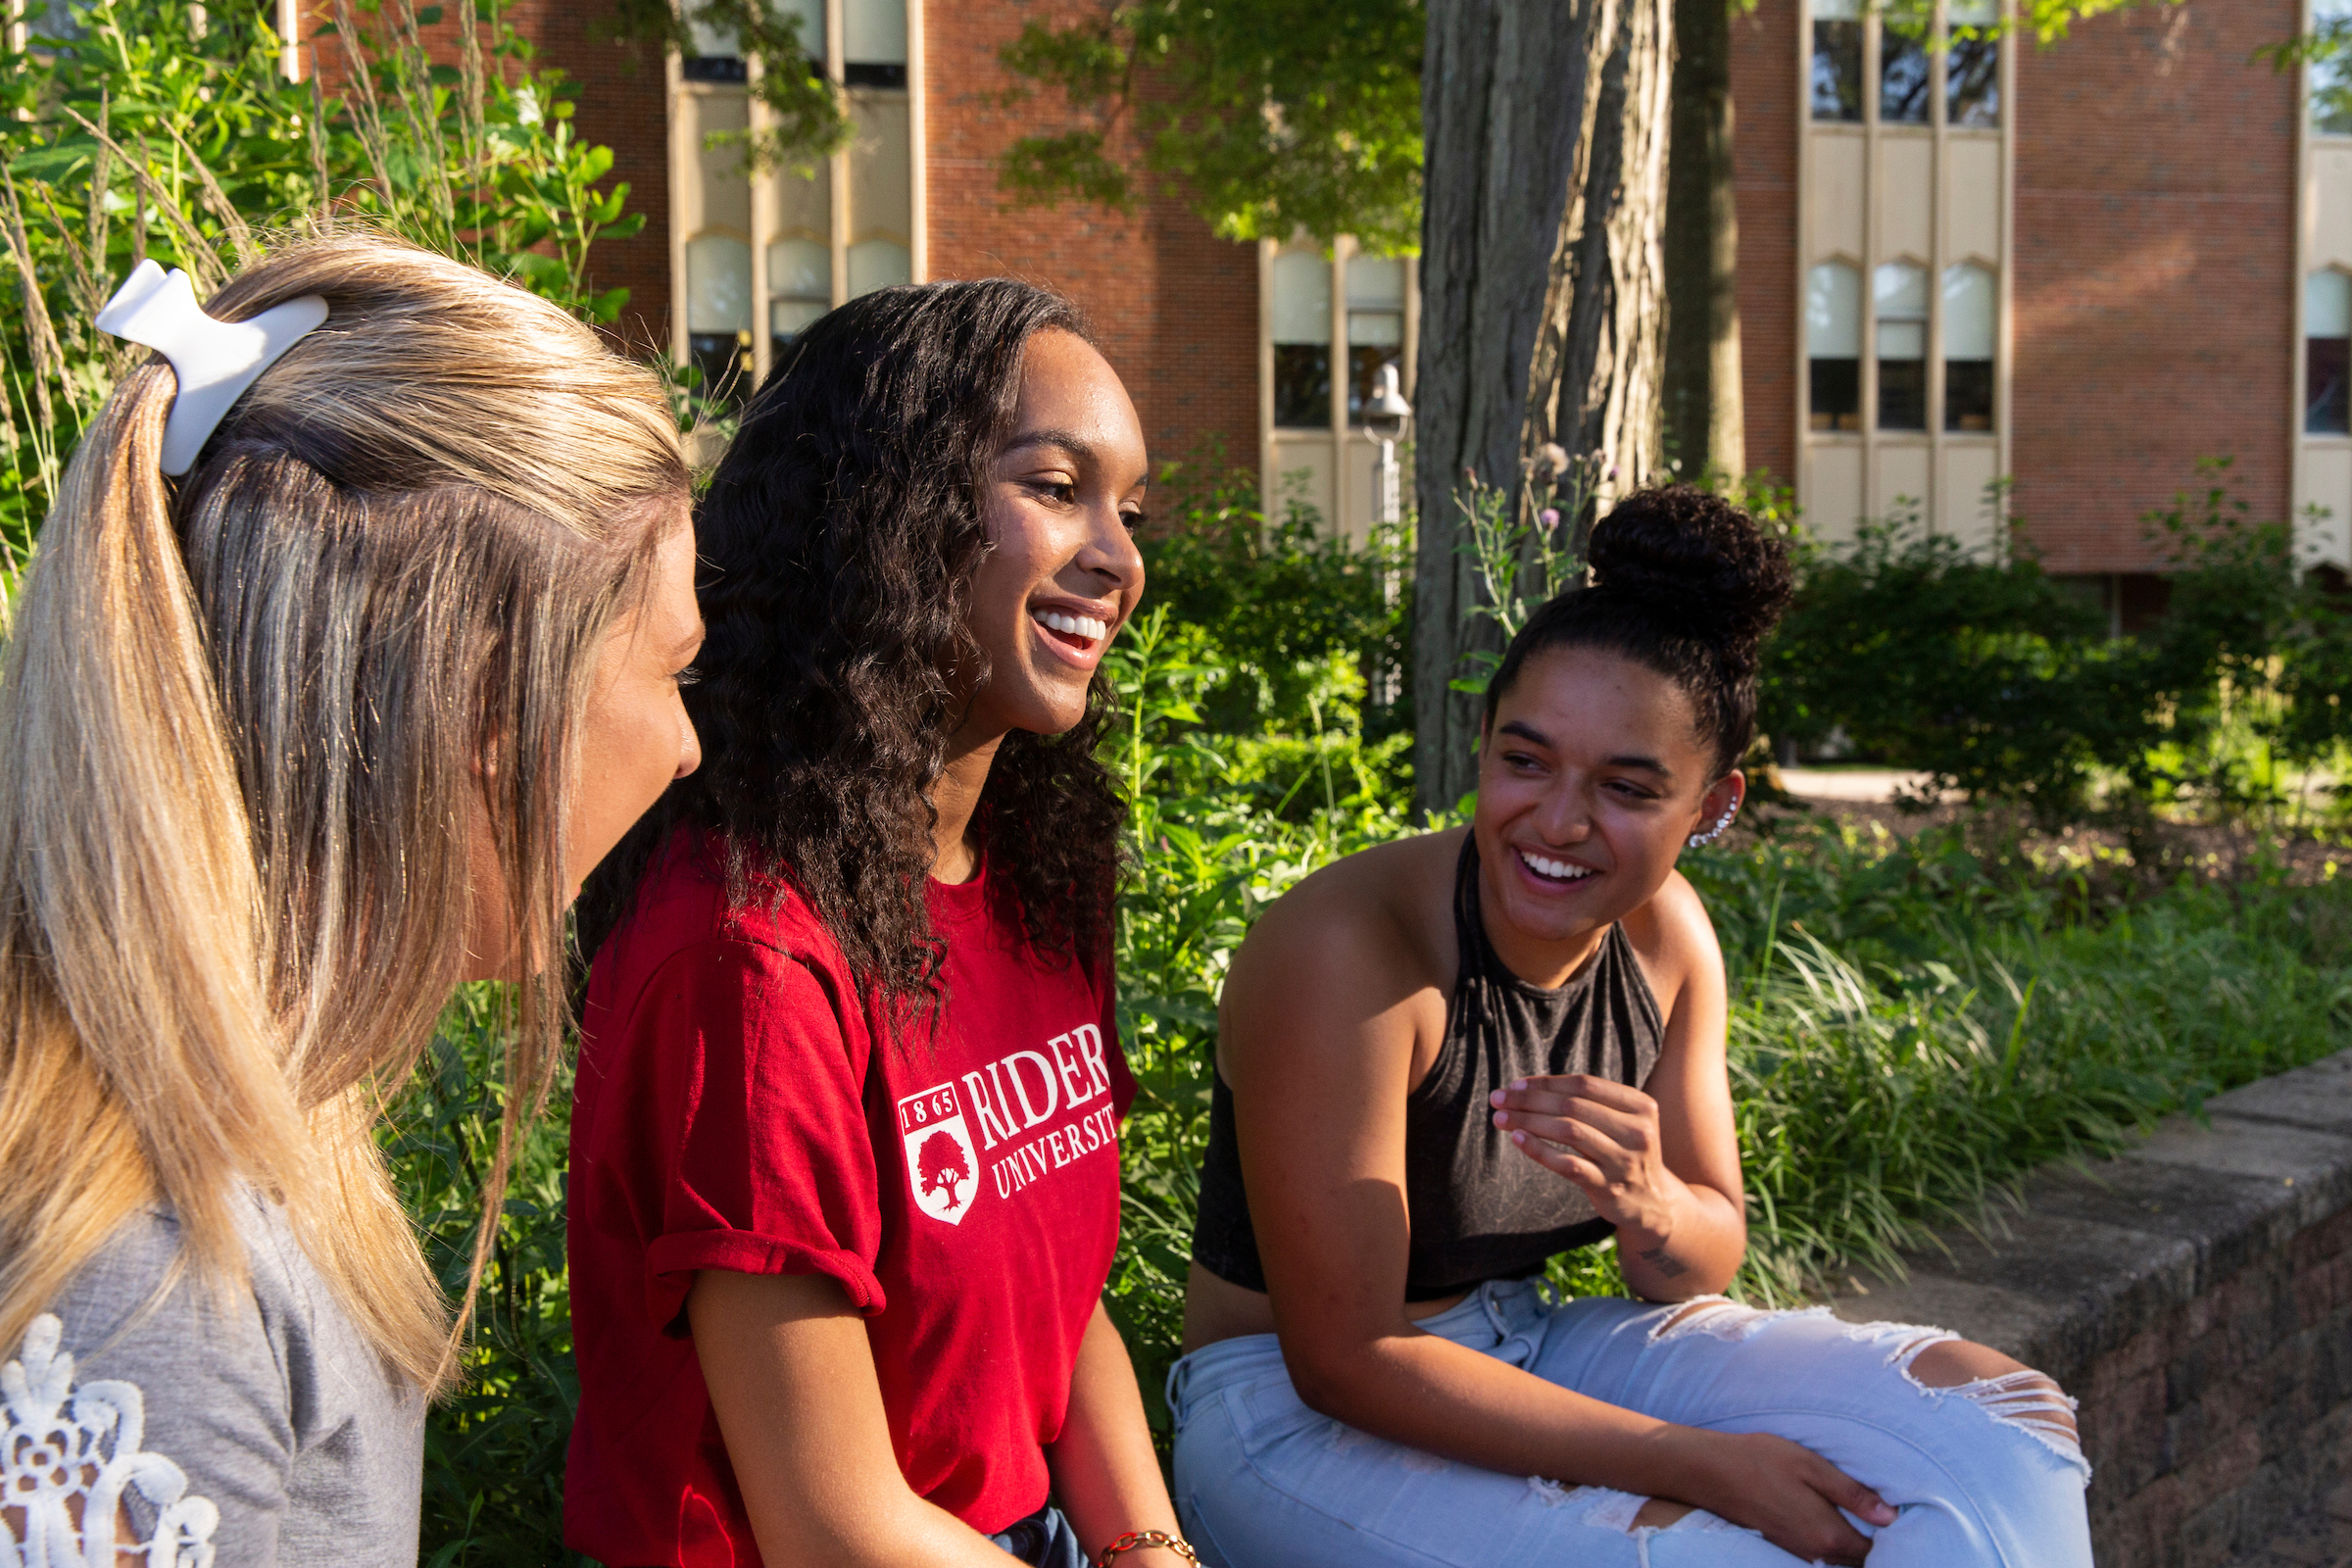 Three students talk and laugh together